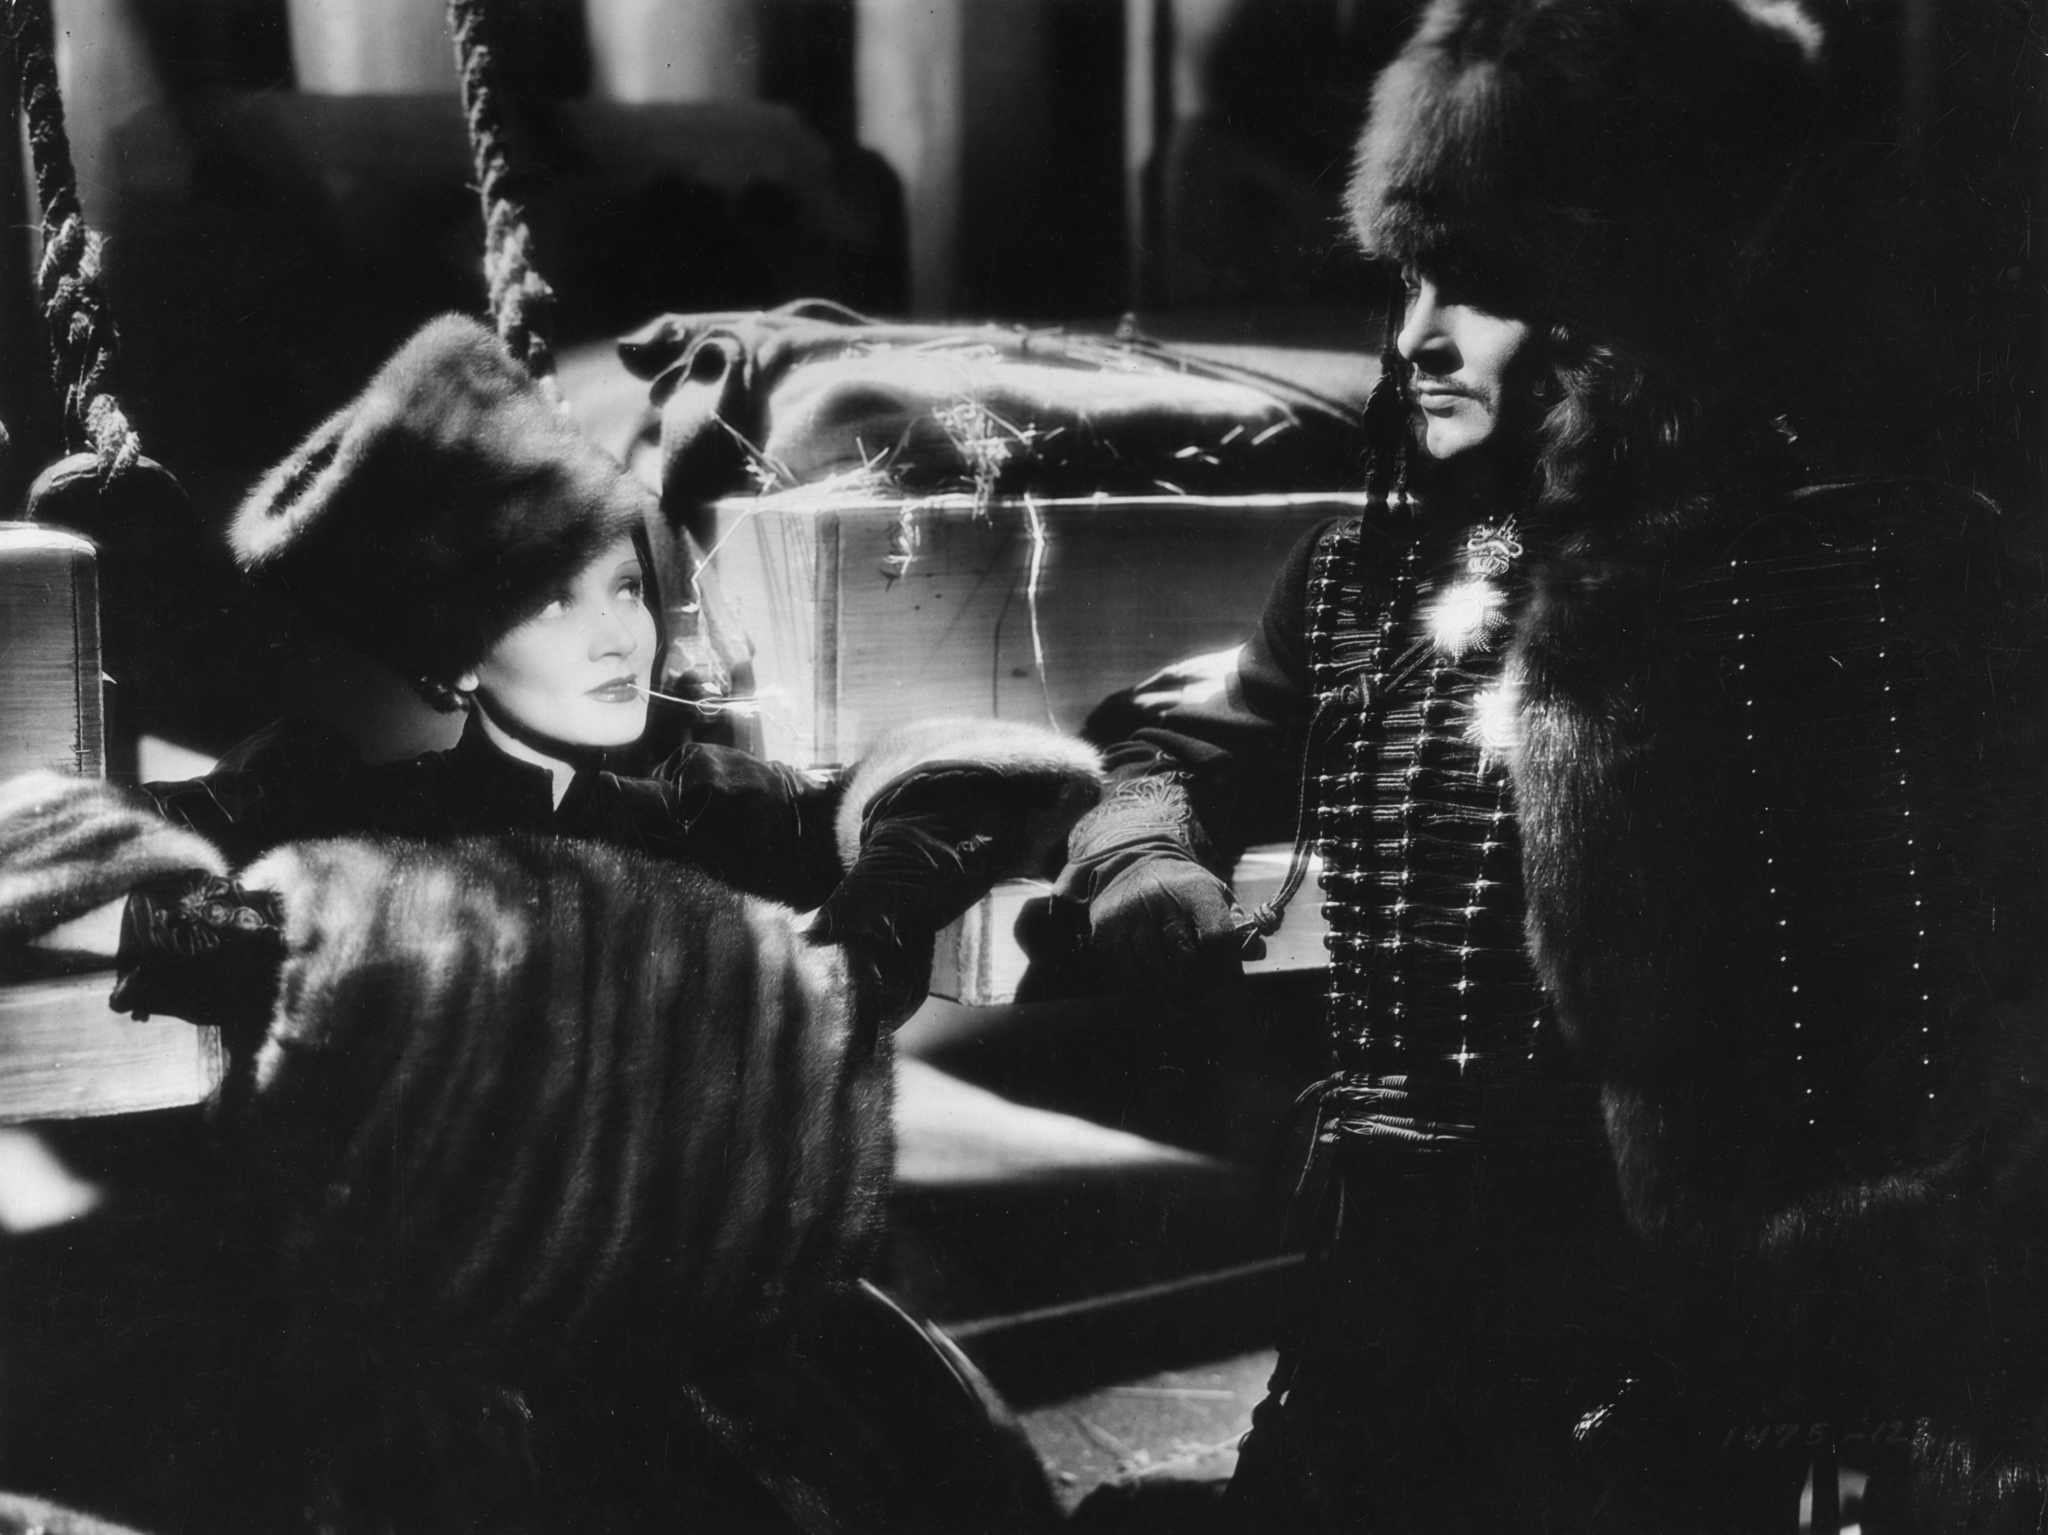 Marlene Dietrich and John Lodge in The Scarlet Empress (1934)